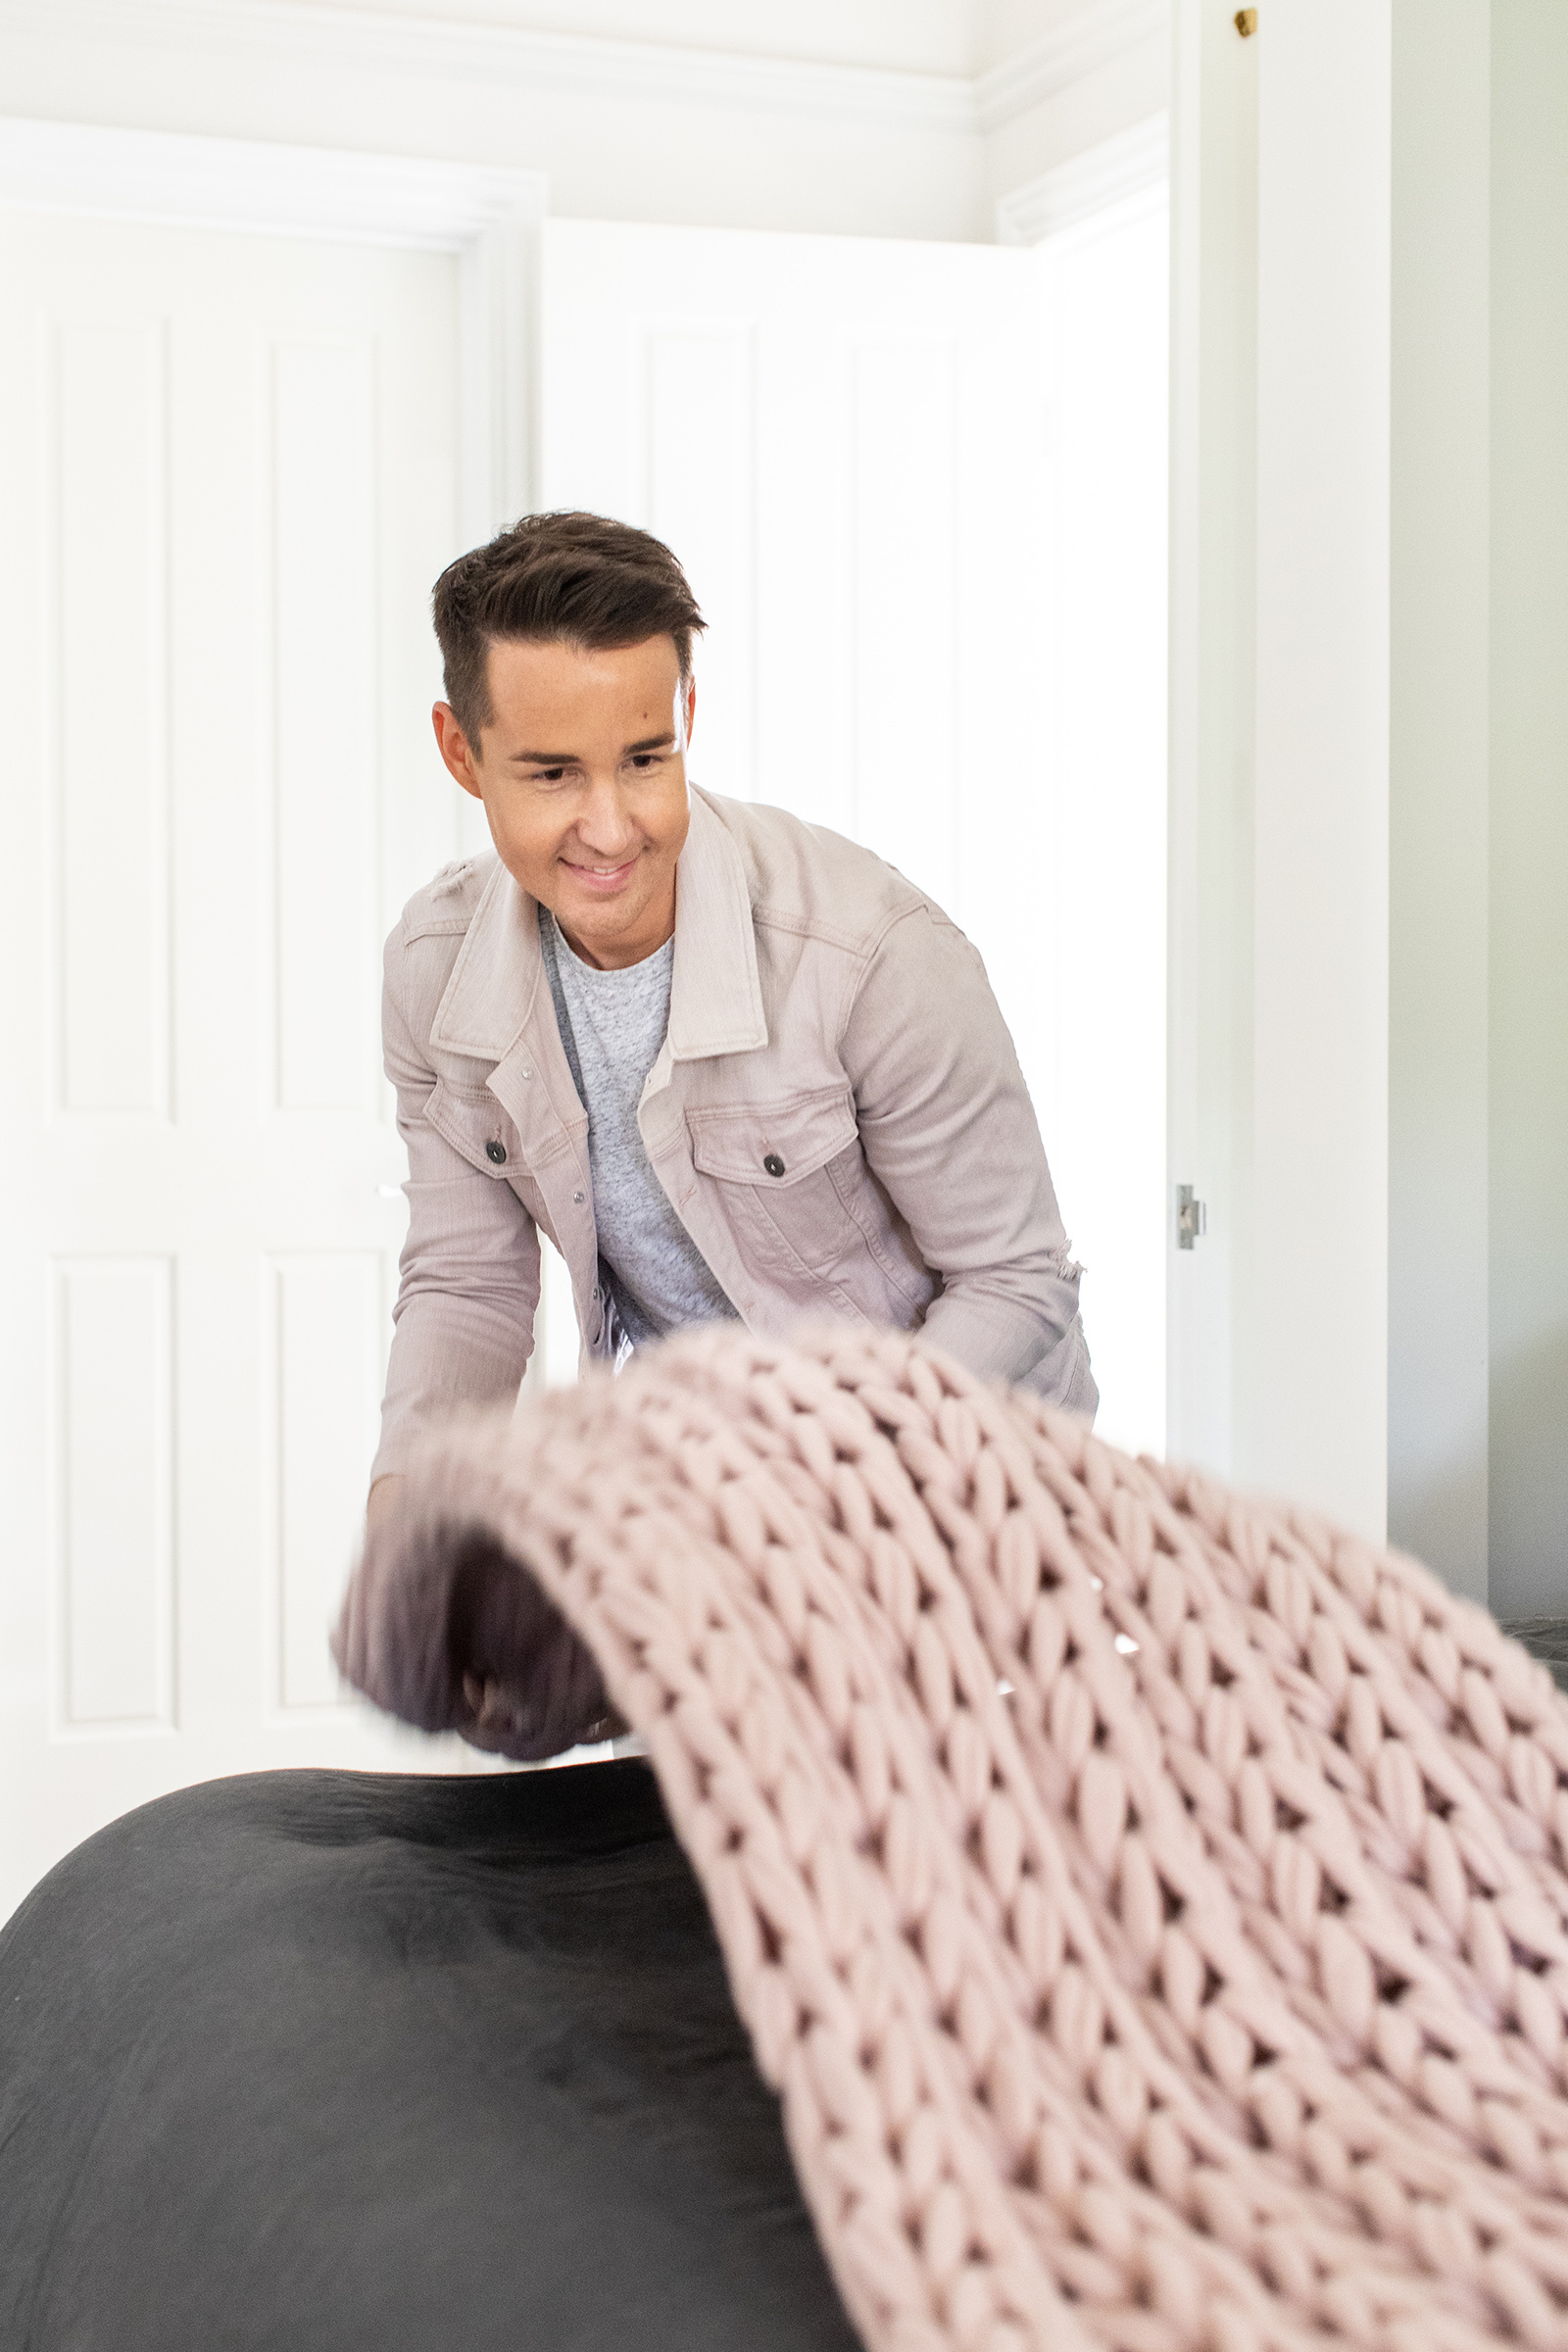 chris carroll tlc interiors melbourne interior designers chris bed styling with pink cable knit throw